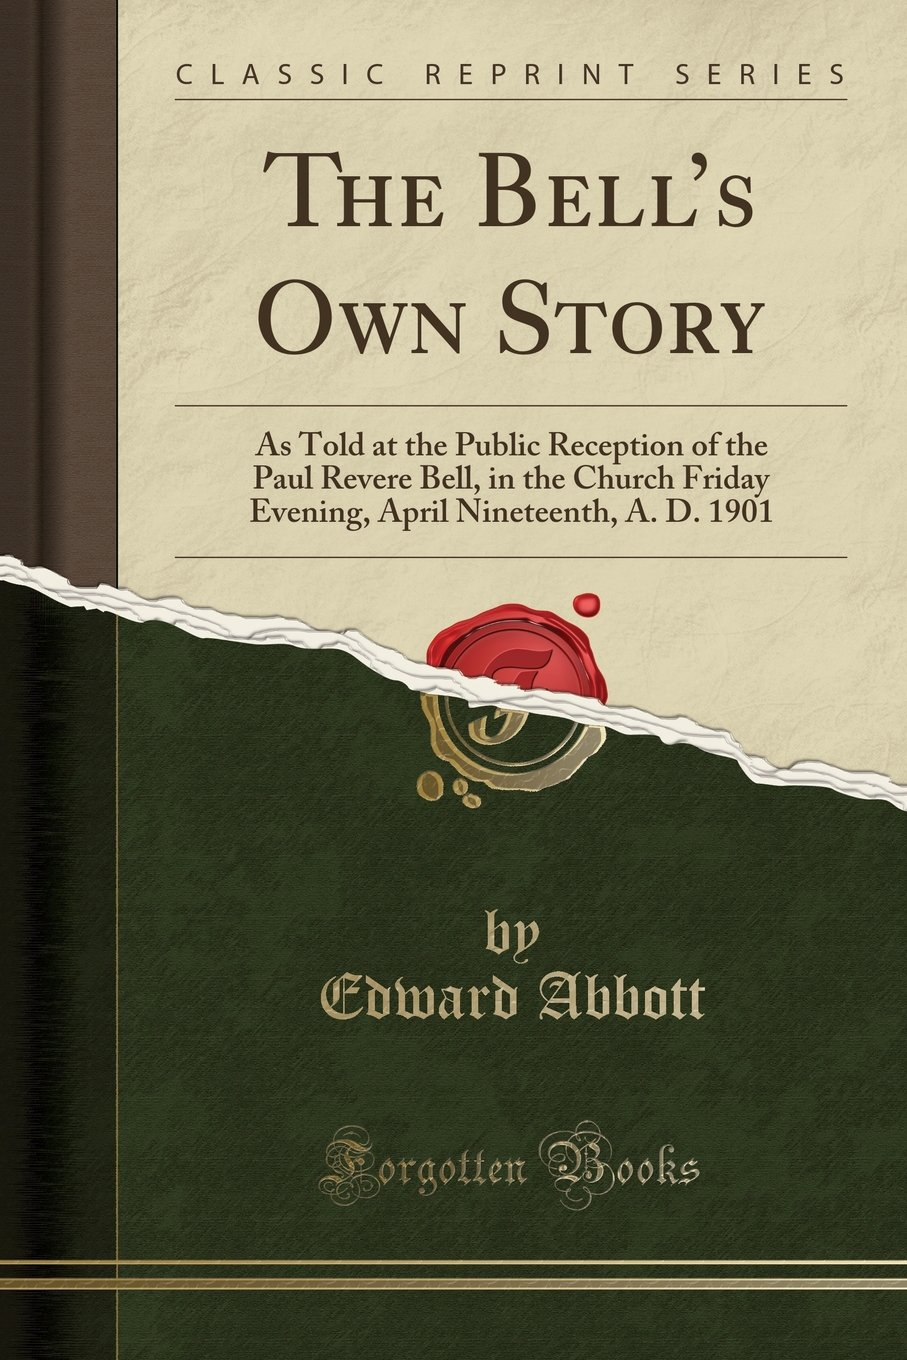 Download The Bell's Own Story: As Told at the Public Reception of the Paul Revere Bell, in the Church Friday Evening, April Nineteenth, A. D. 1901 (Classic Reprint) PDF